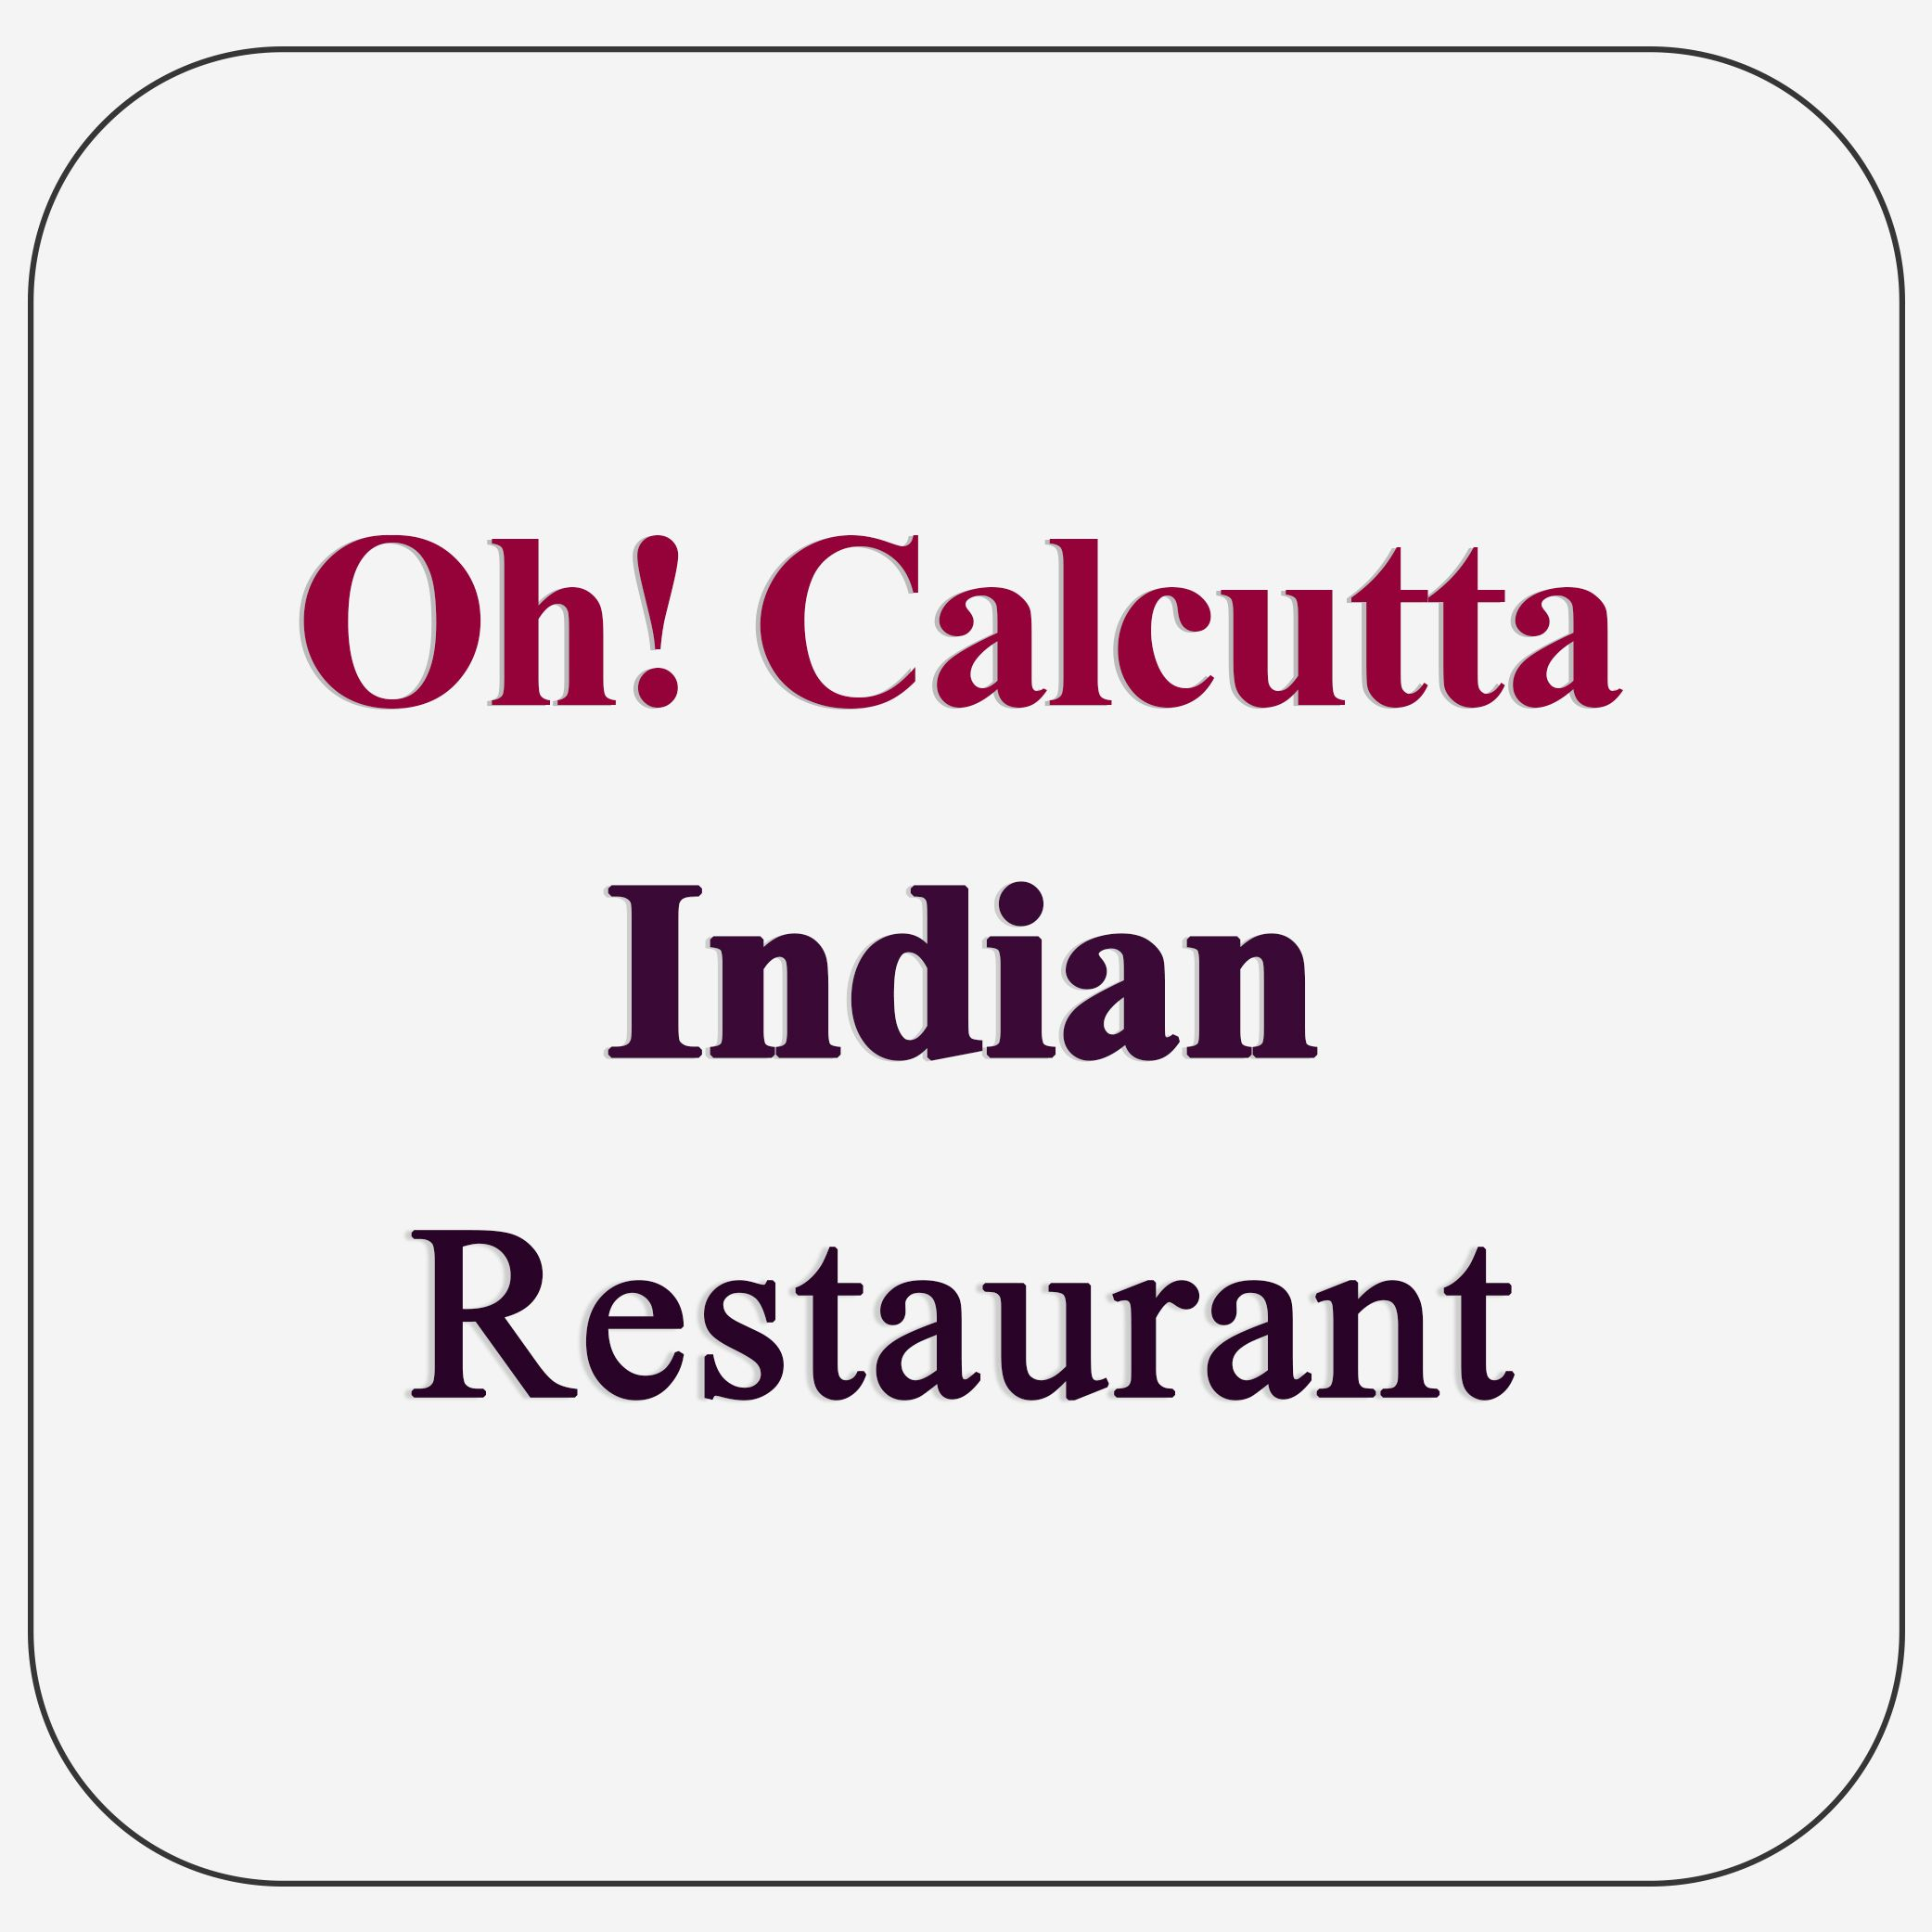 Oh! Calcutta Indian Restaurant